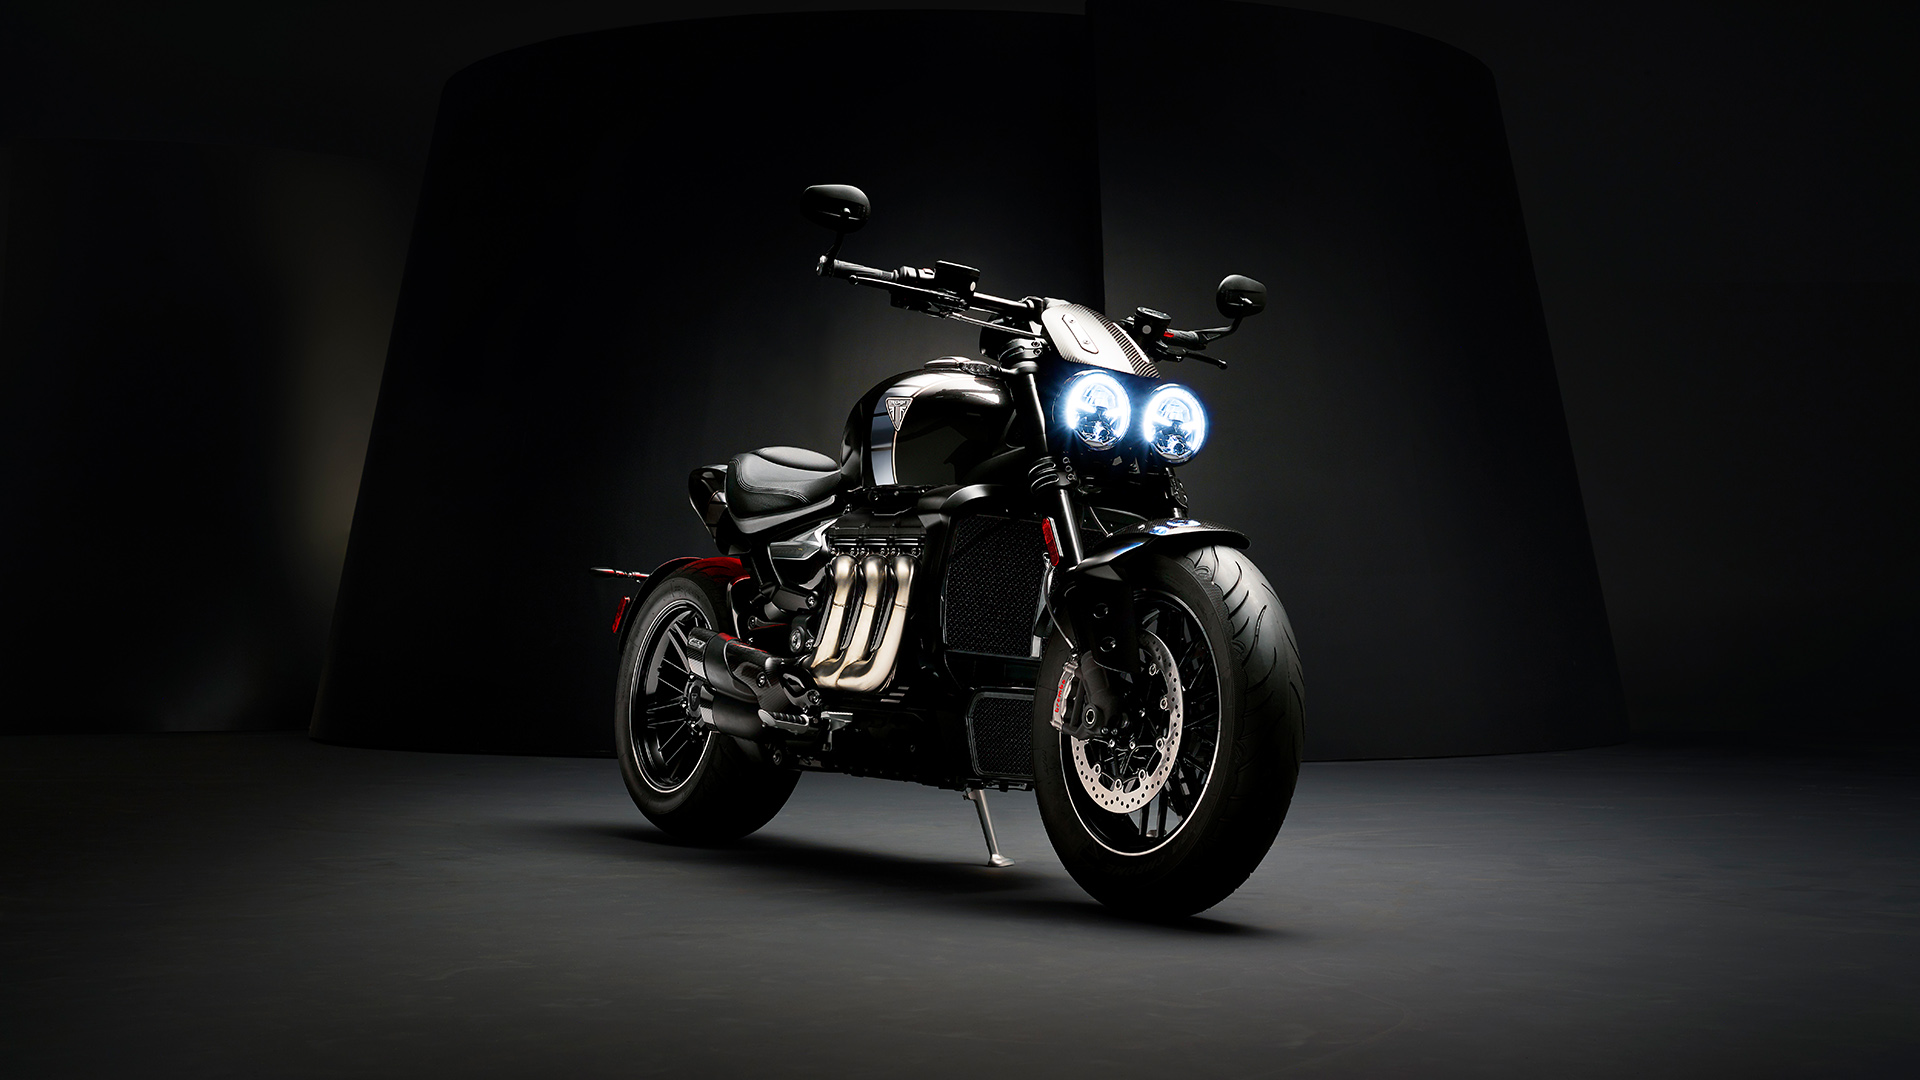 Triumph Rocket 3 TFC front three quarters featuring iconic three header exhaust run with premium carbon fibre detailing